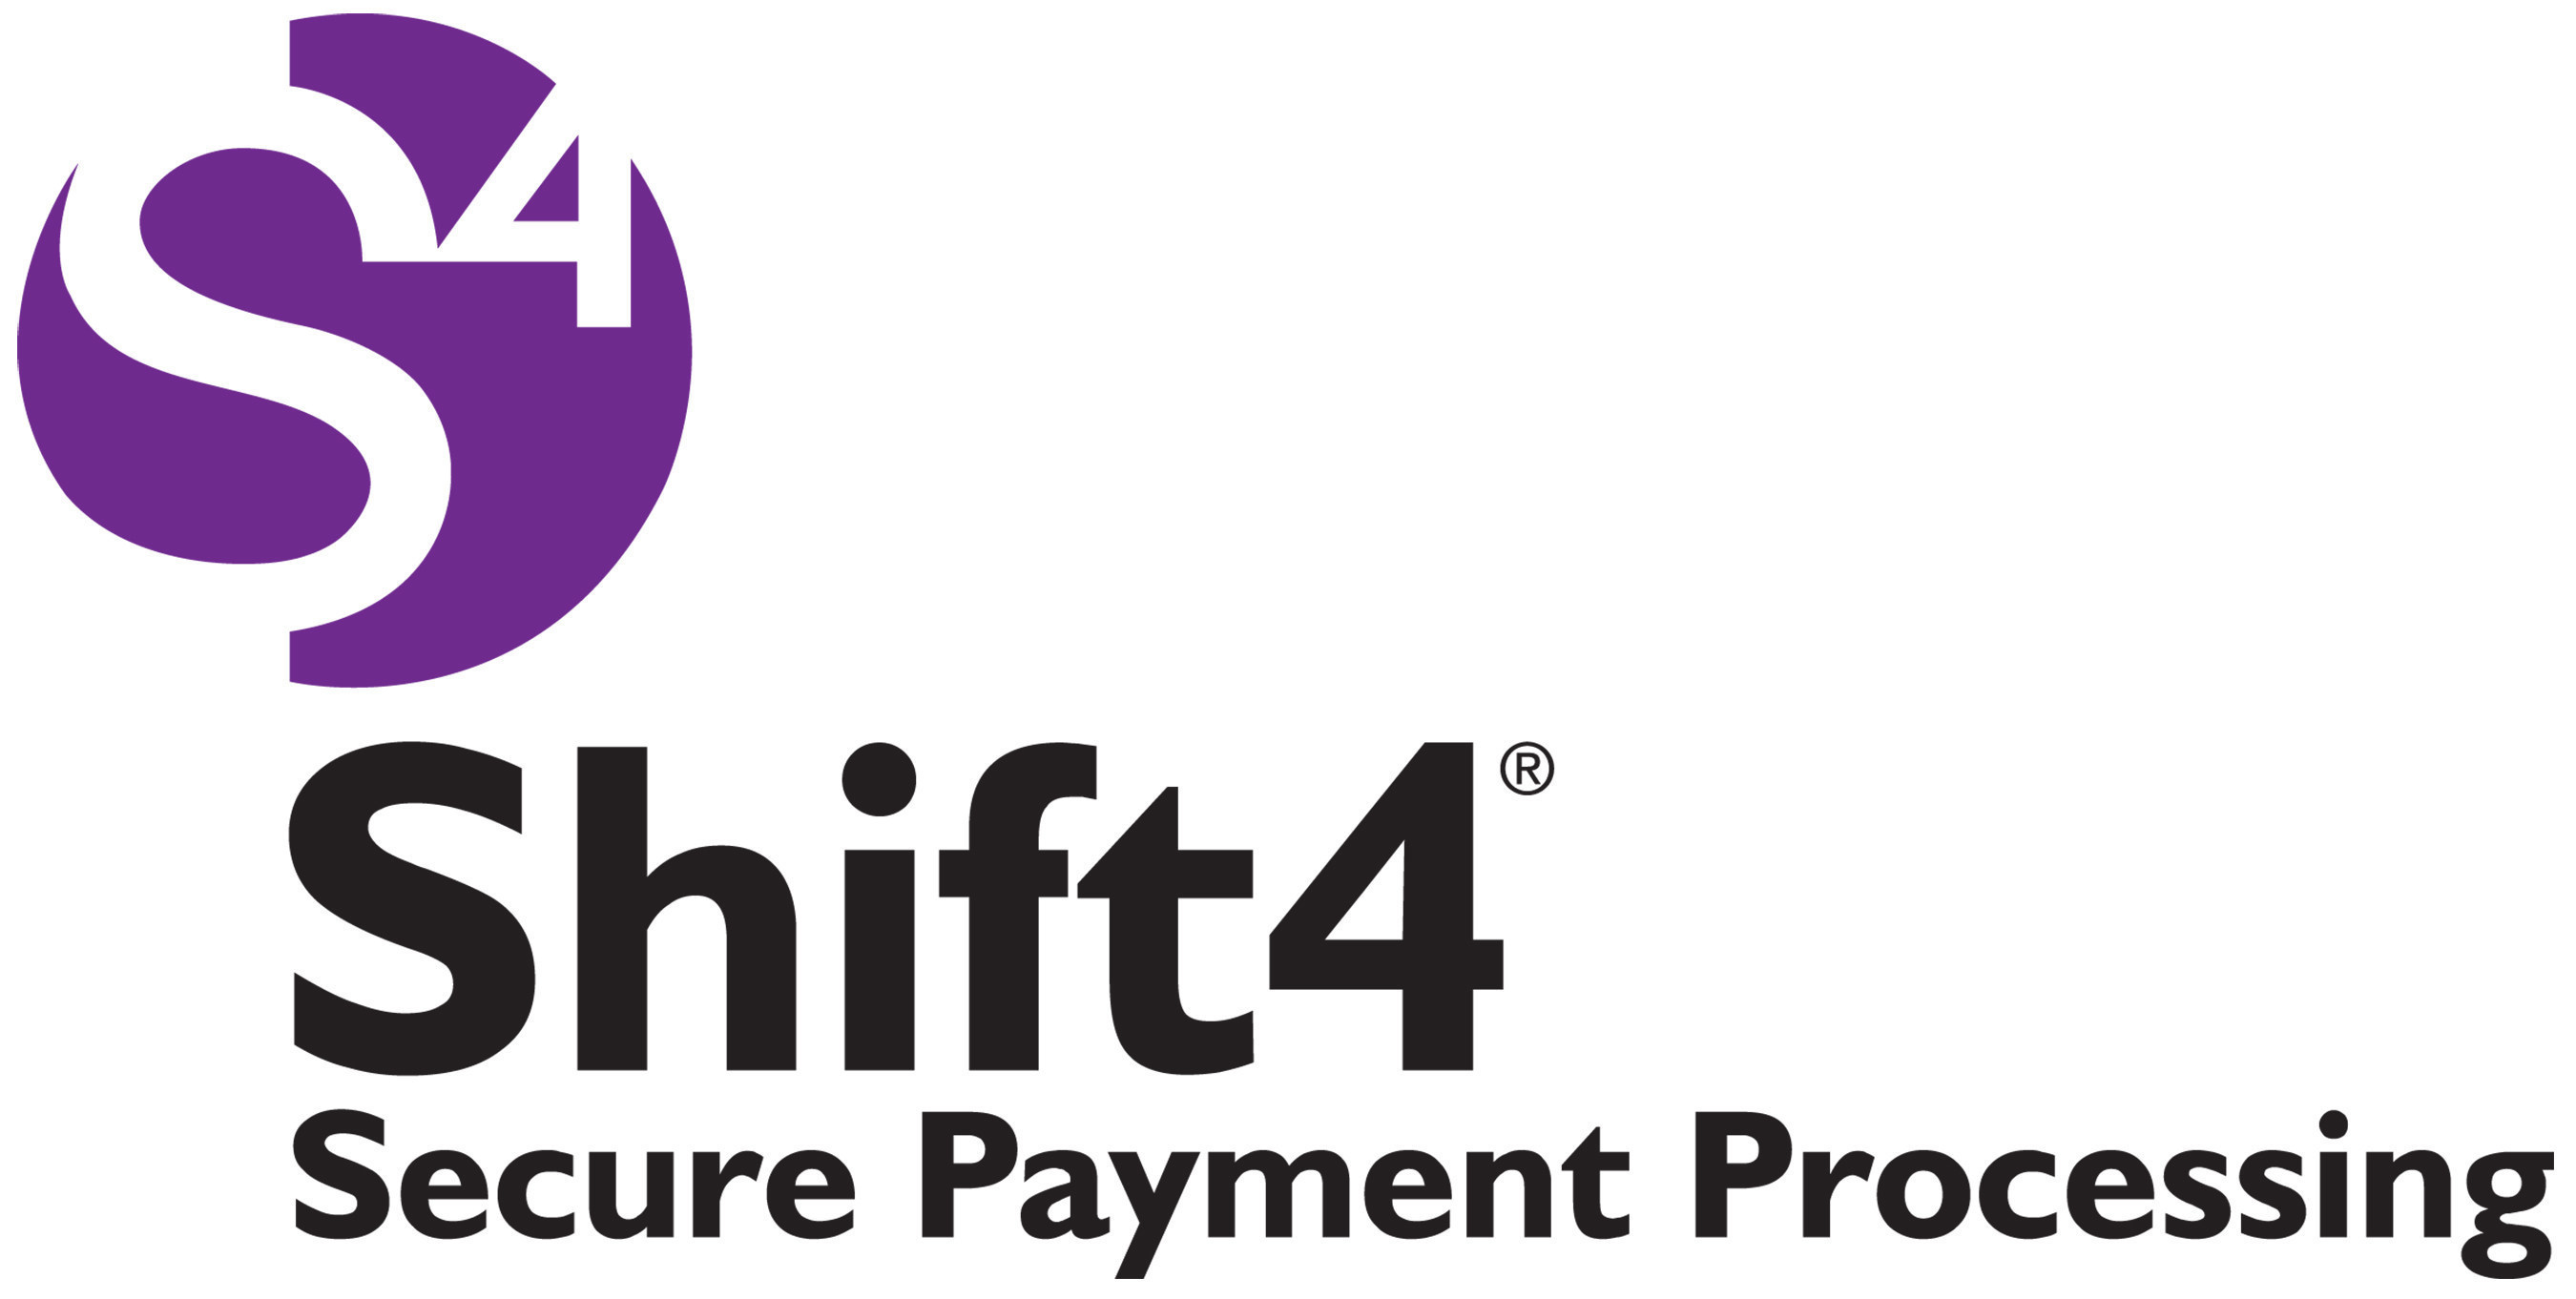 Shift4 is dedicated to maintaining the trust of more than 24,000 merchants who rely on their DOLLARS ON THE ...